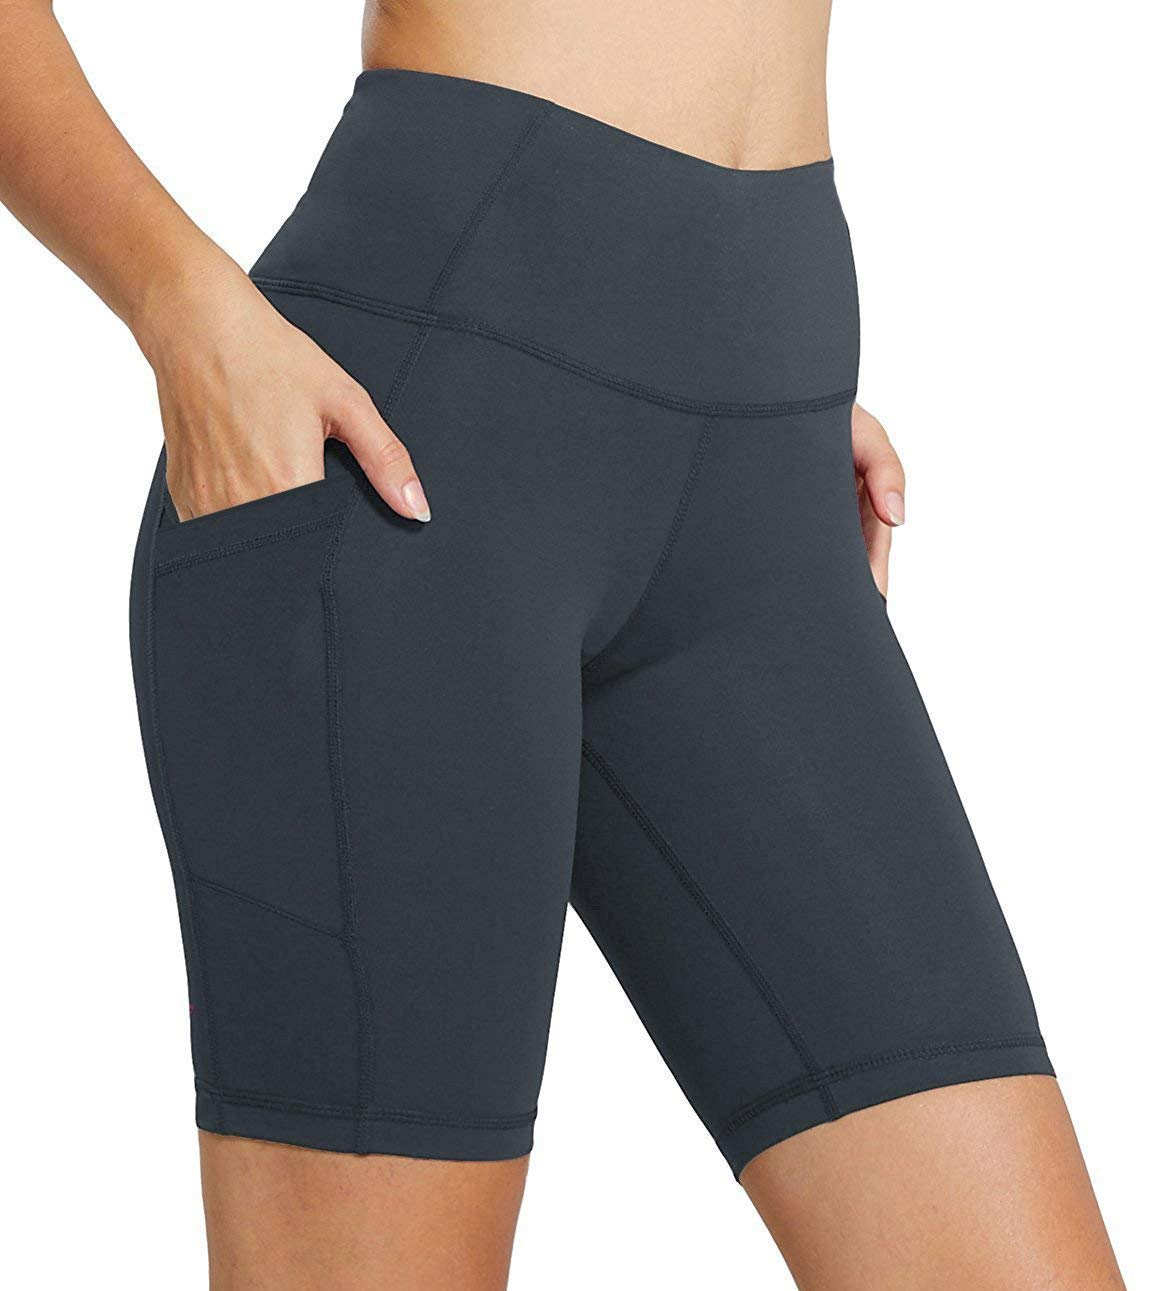 FIRM ABS Women's 8